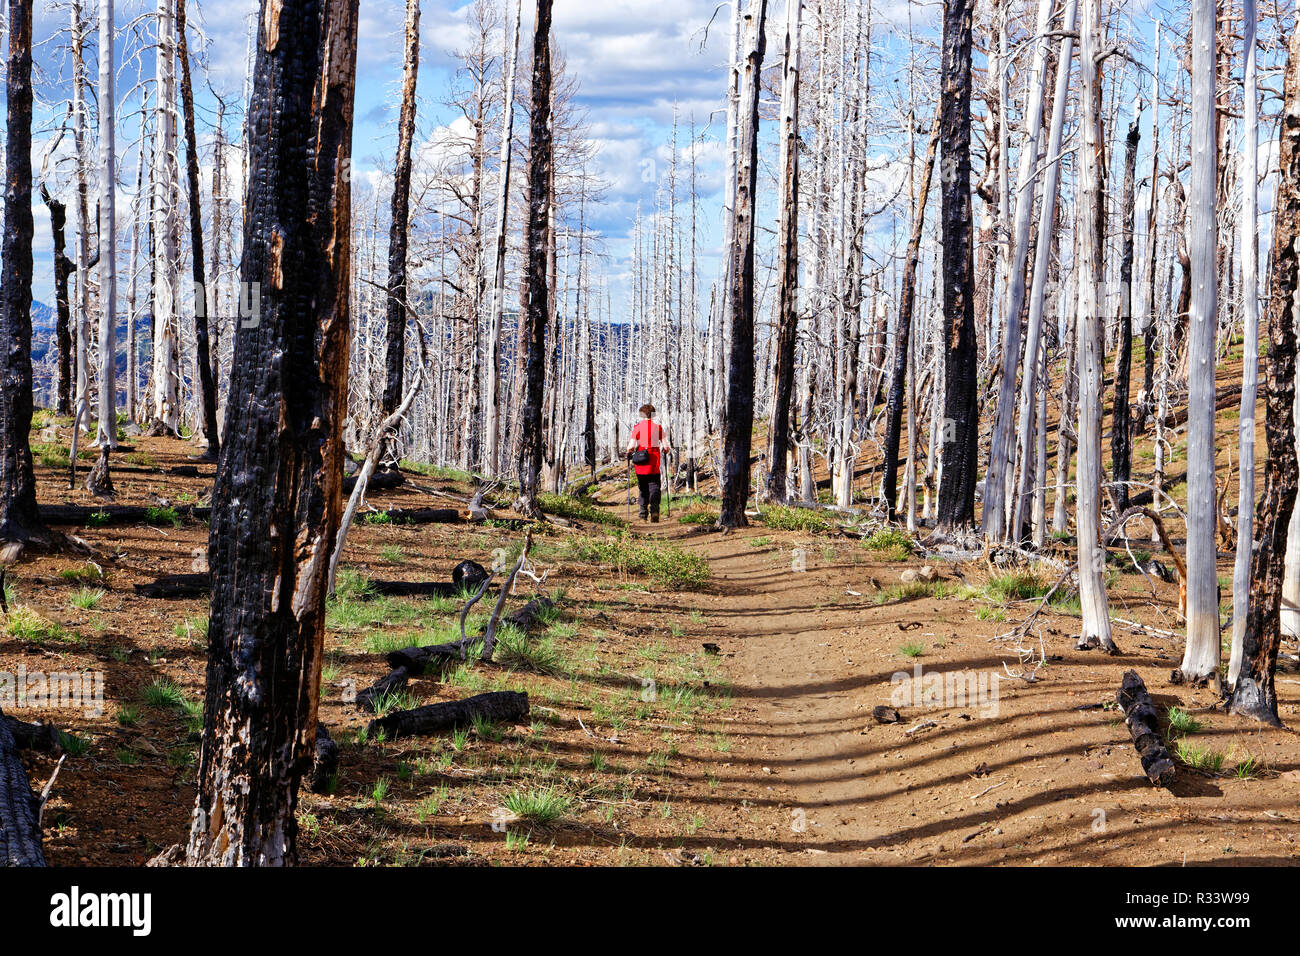 42,880.02531 woman hiking in stark blackened burned out bare trees remaining after a major conifer tree U.S. National Forest fire wildfire - Stock Image